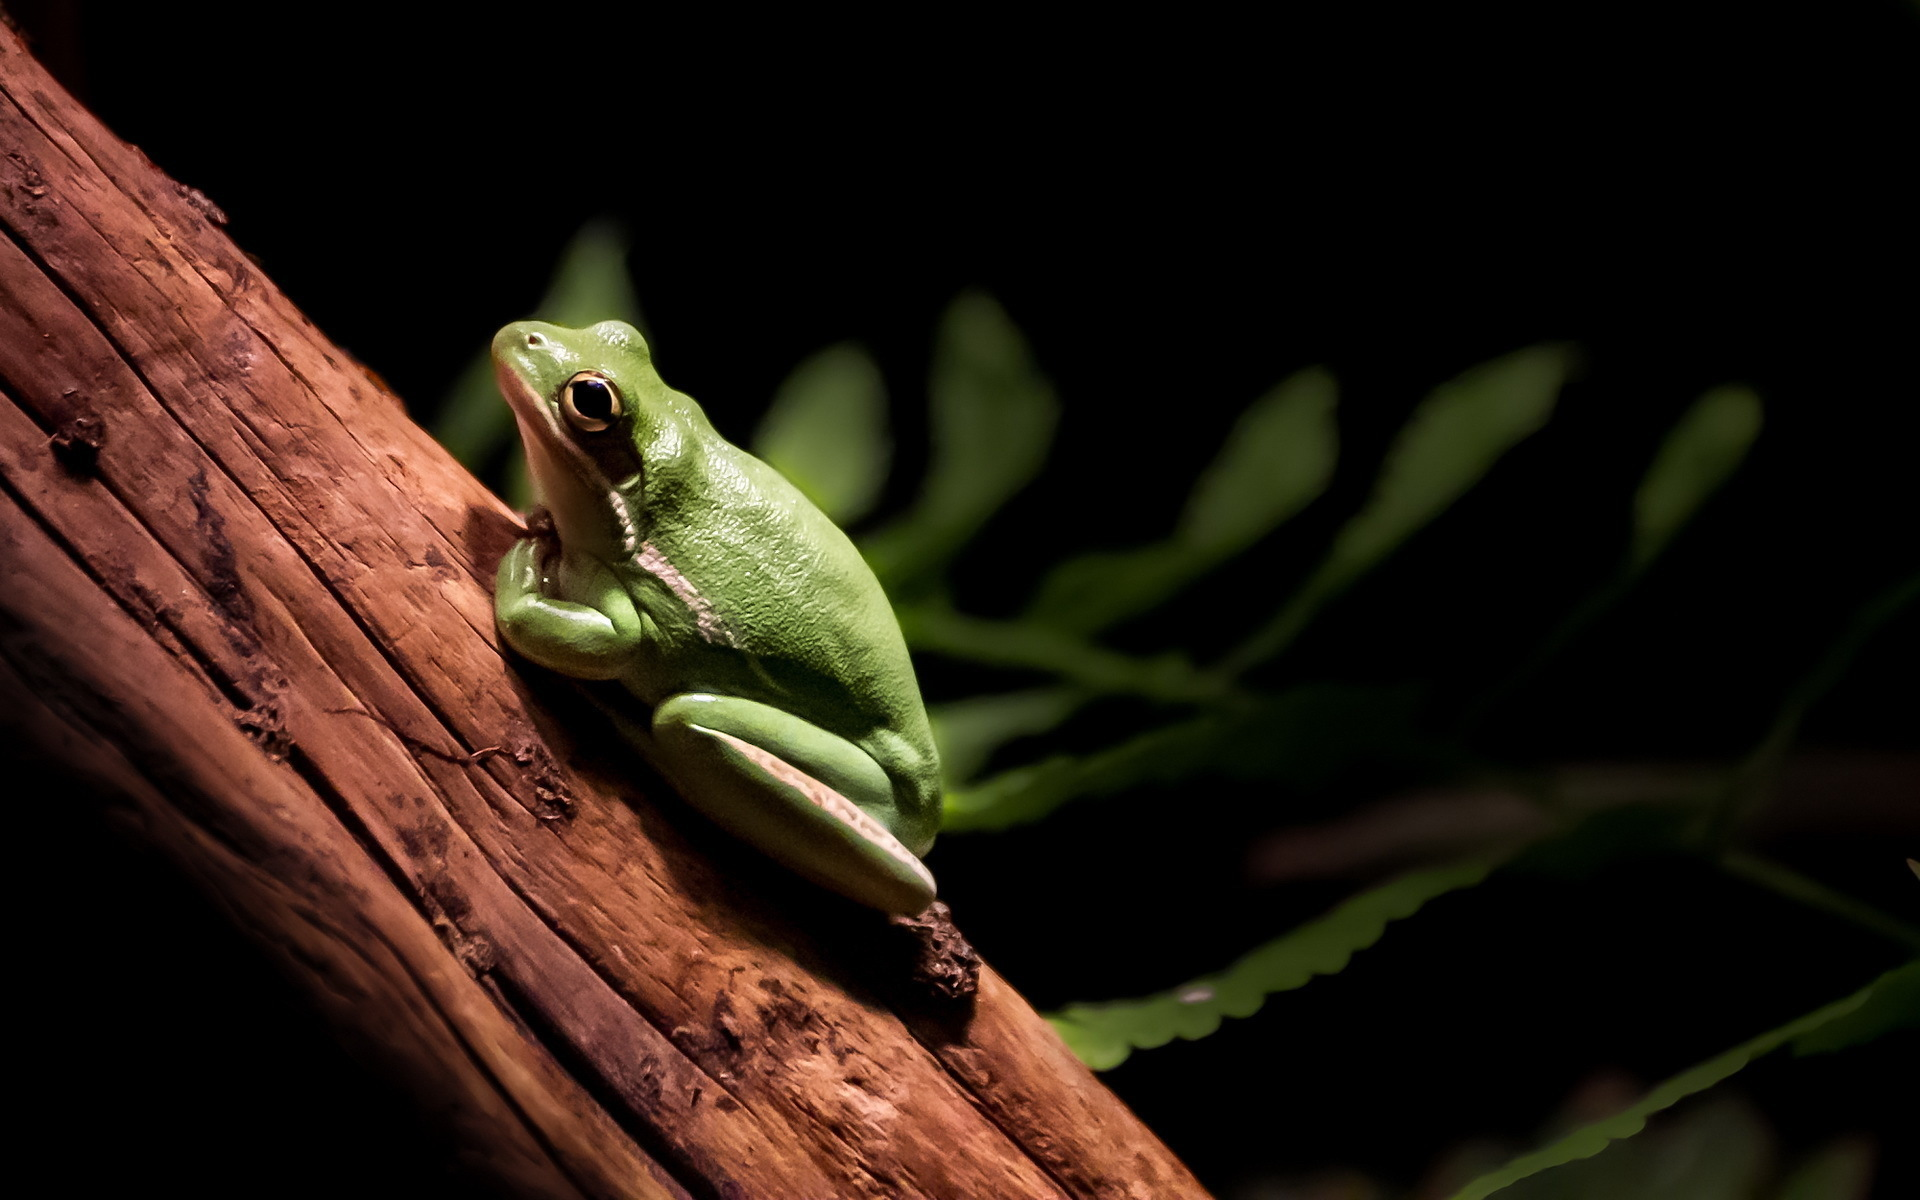 27282 download wallpaper Animals, Frogs screensavers and pictures for free